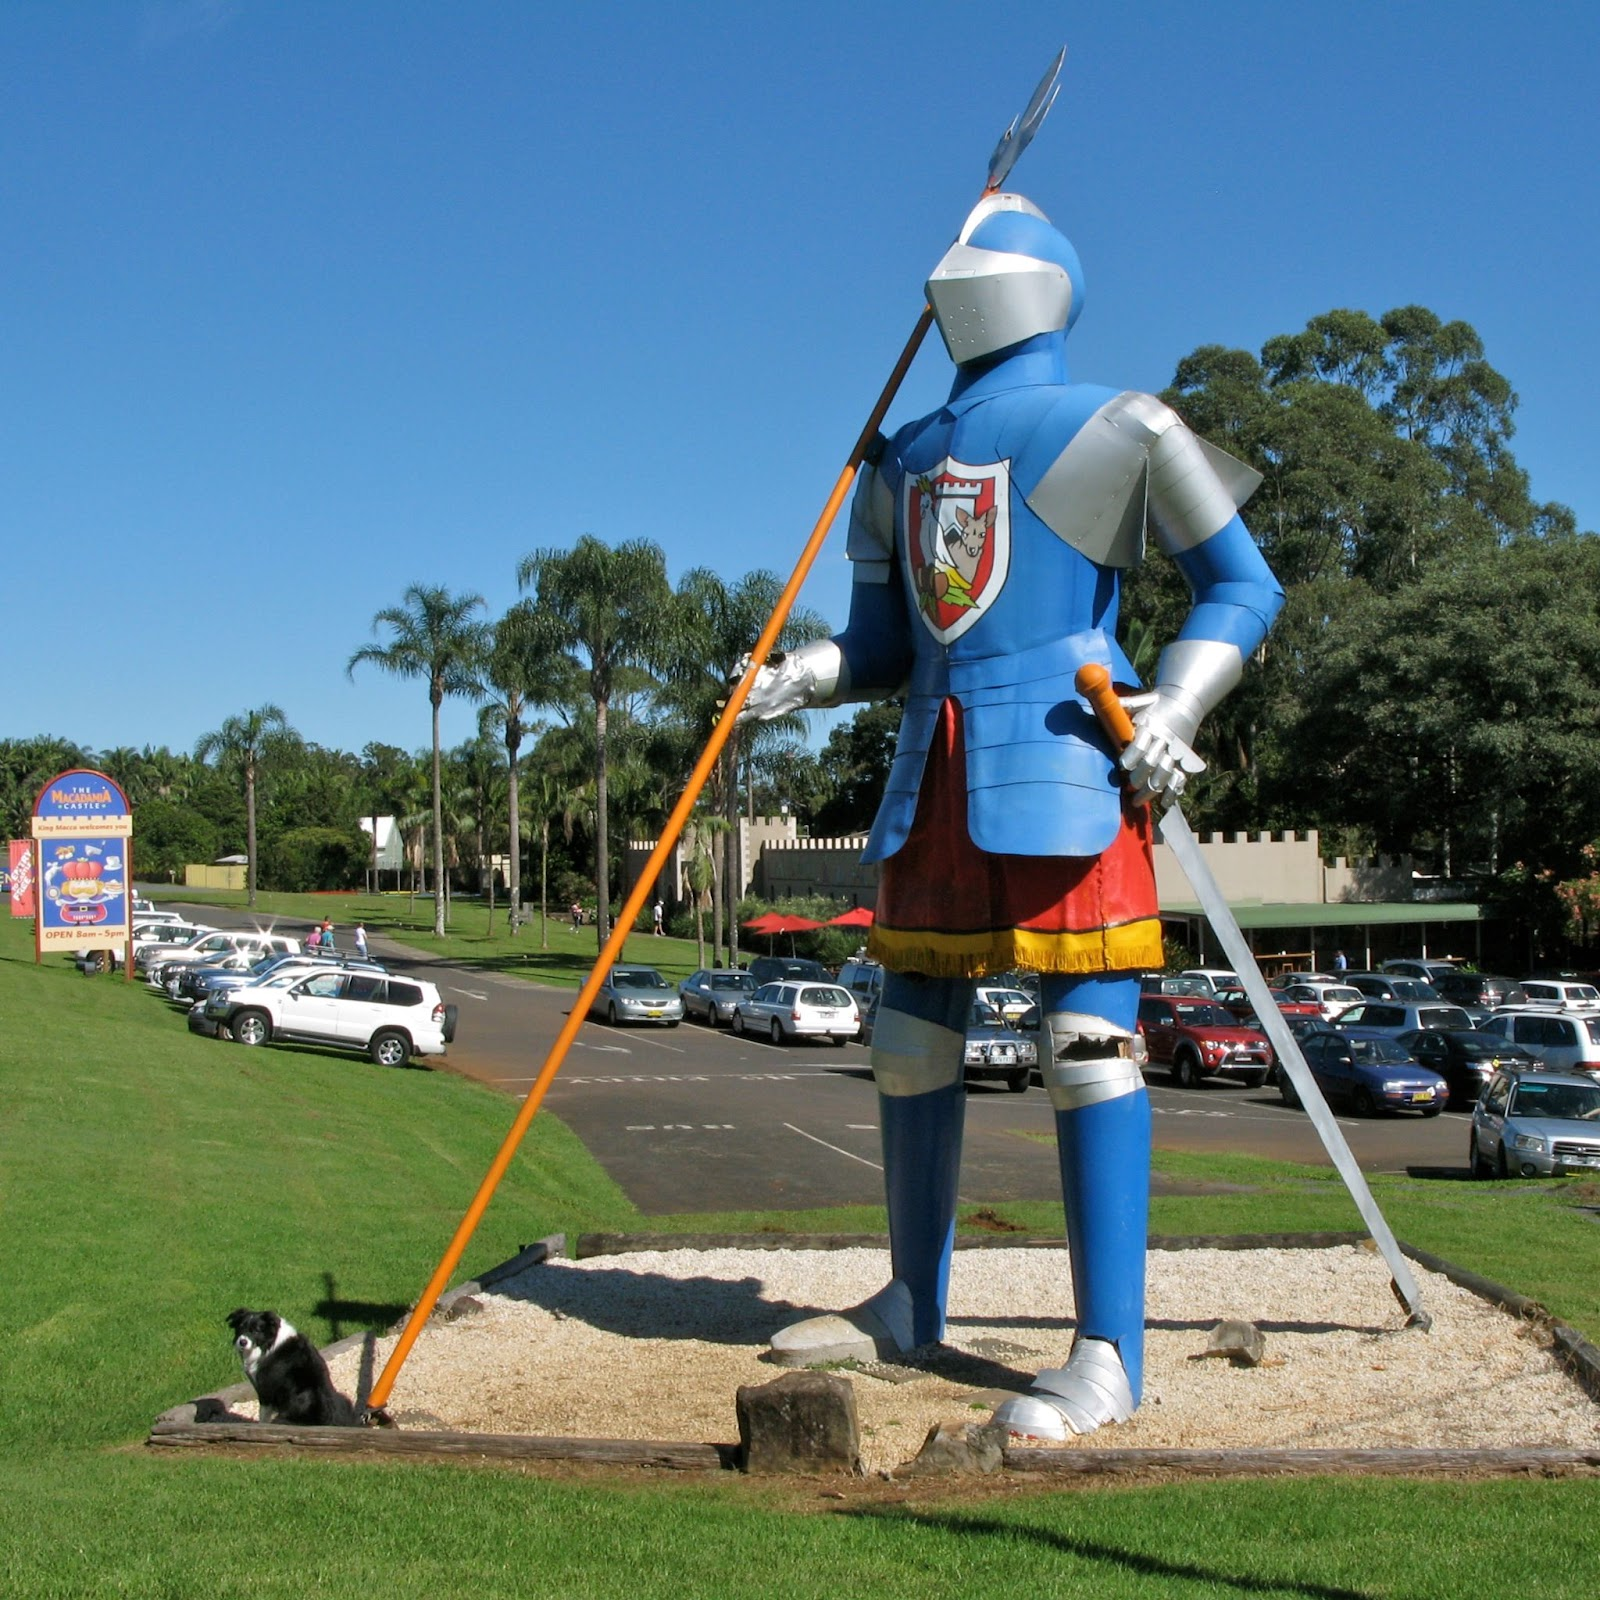 the big knight statue wearing a colourful suit of armour holding a spear and a sword